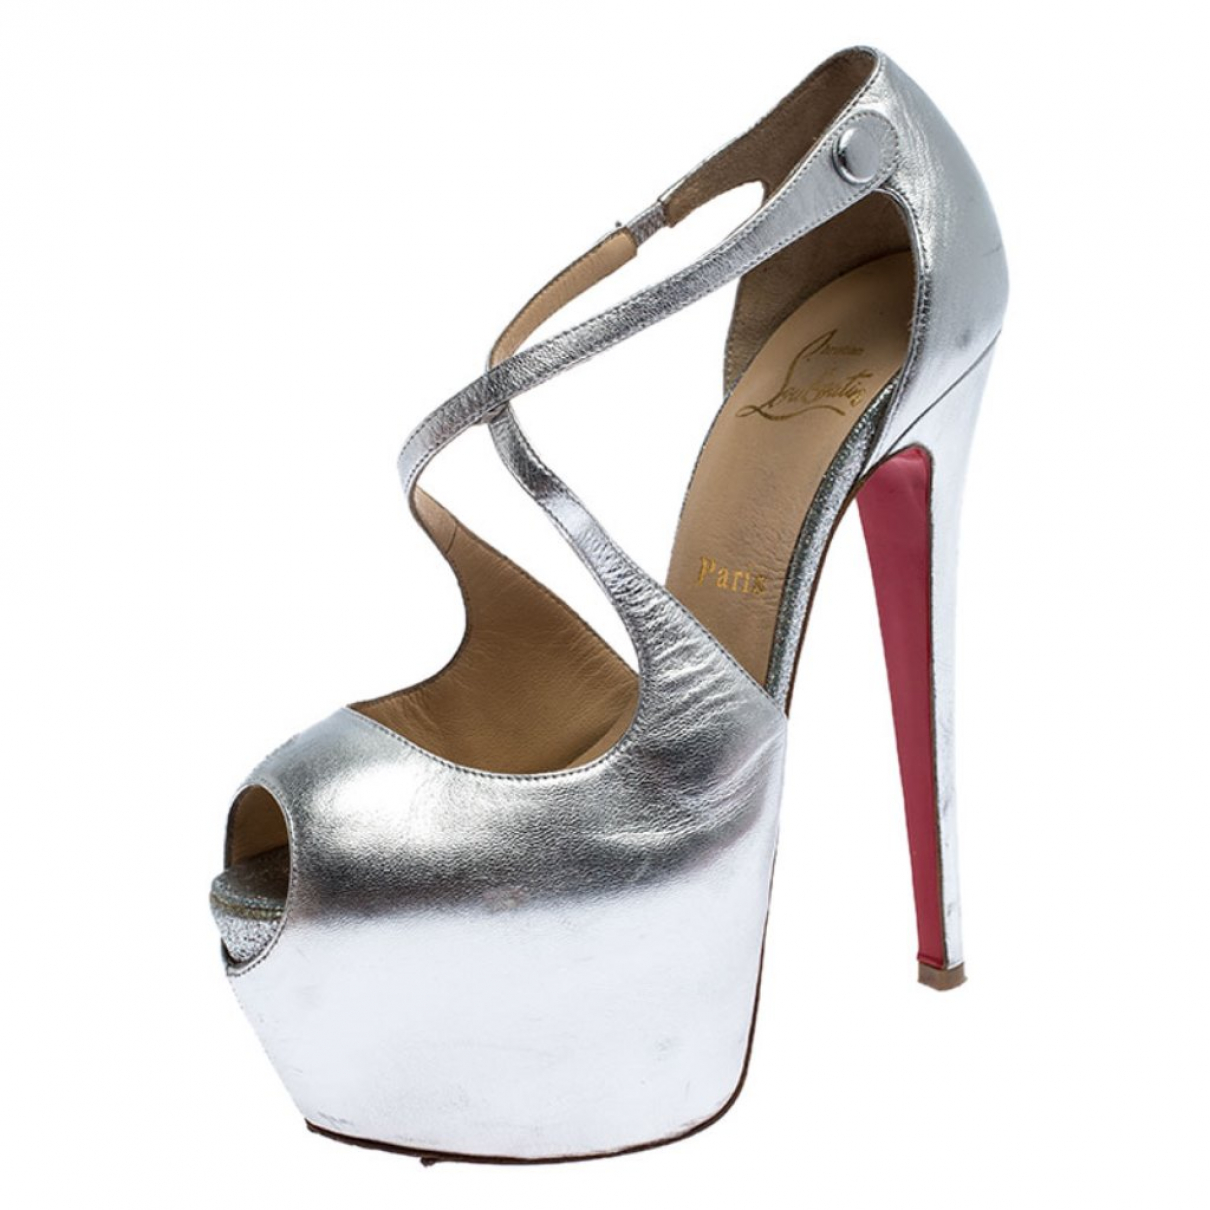 Christian Louboutin N Silver Leather Sandals for Women 6.5 US